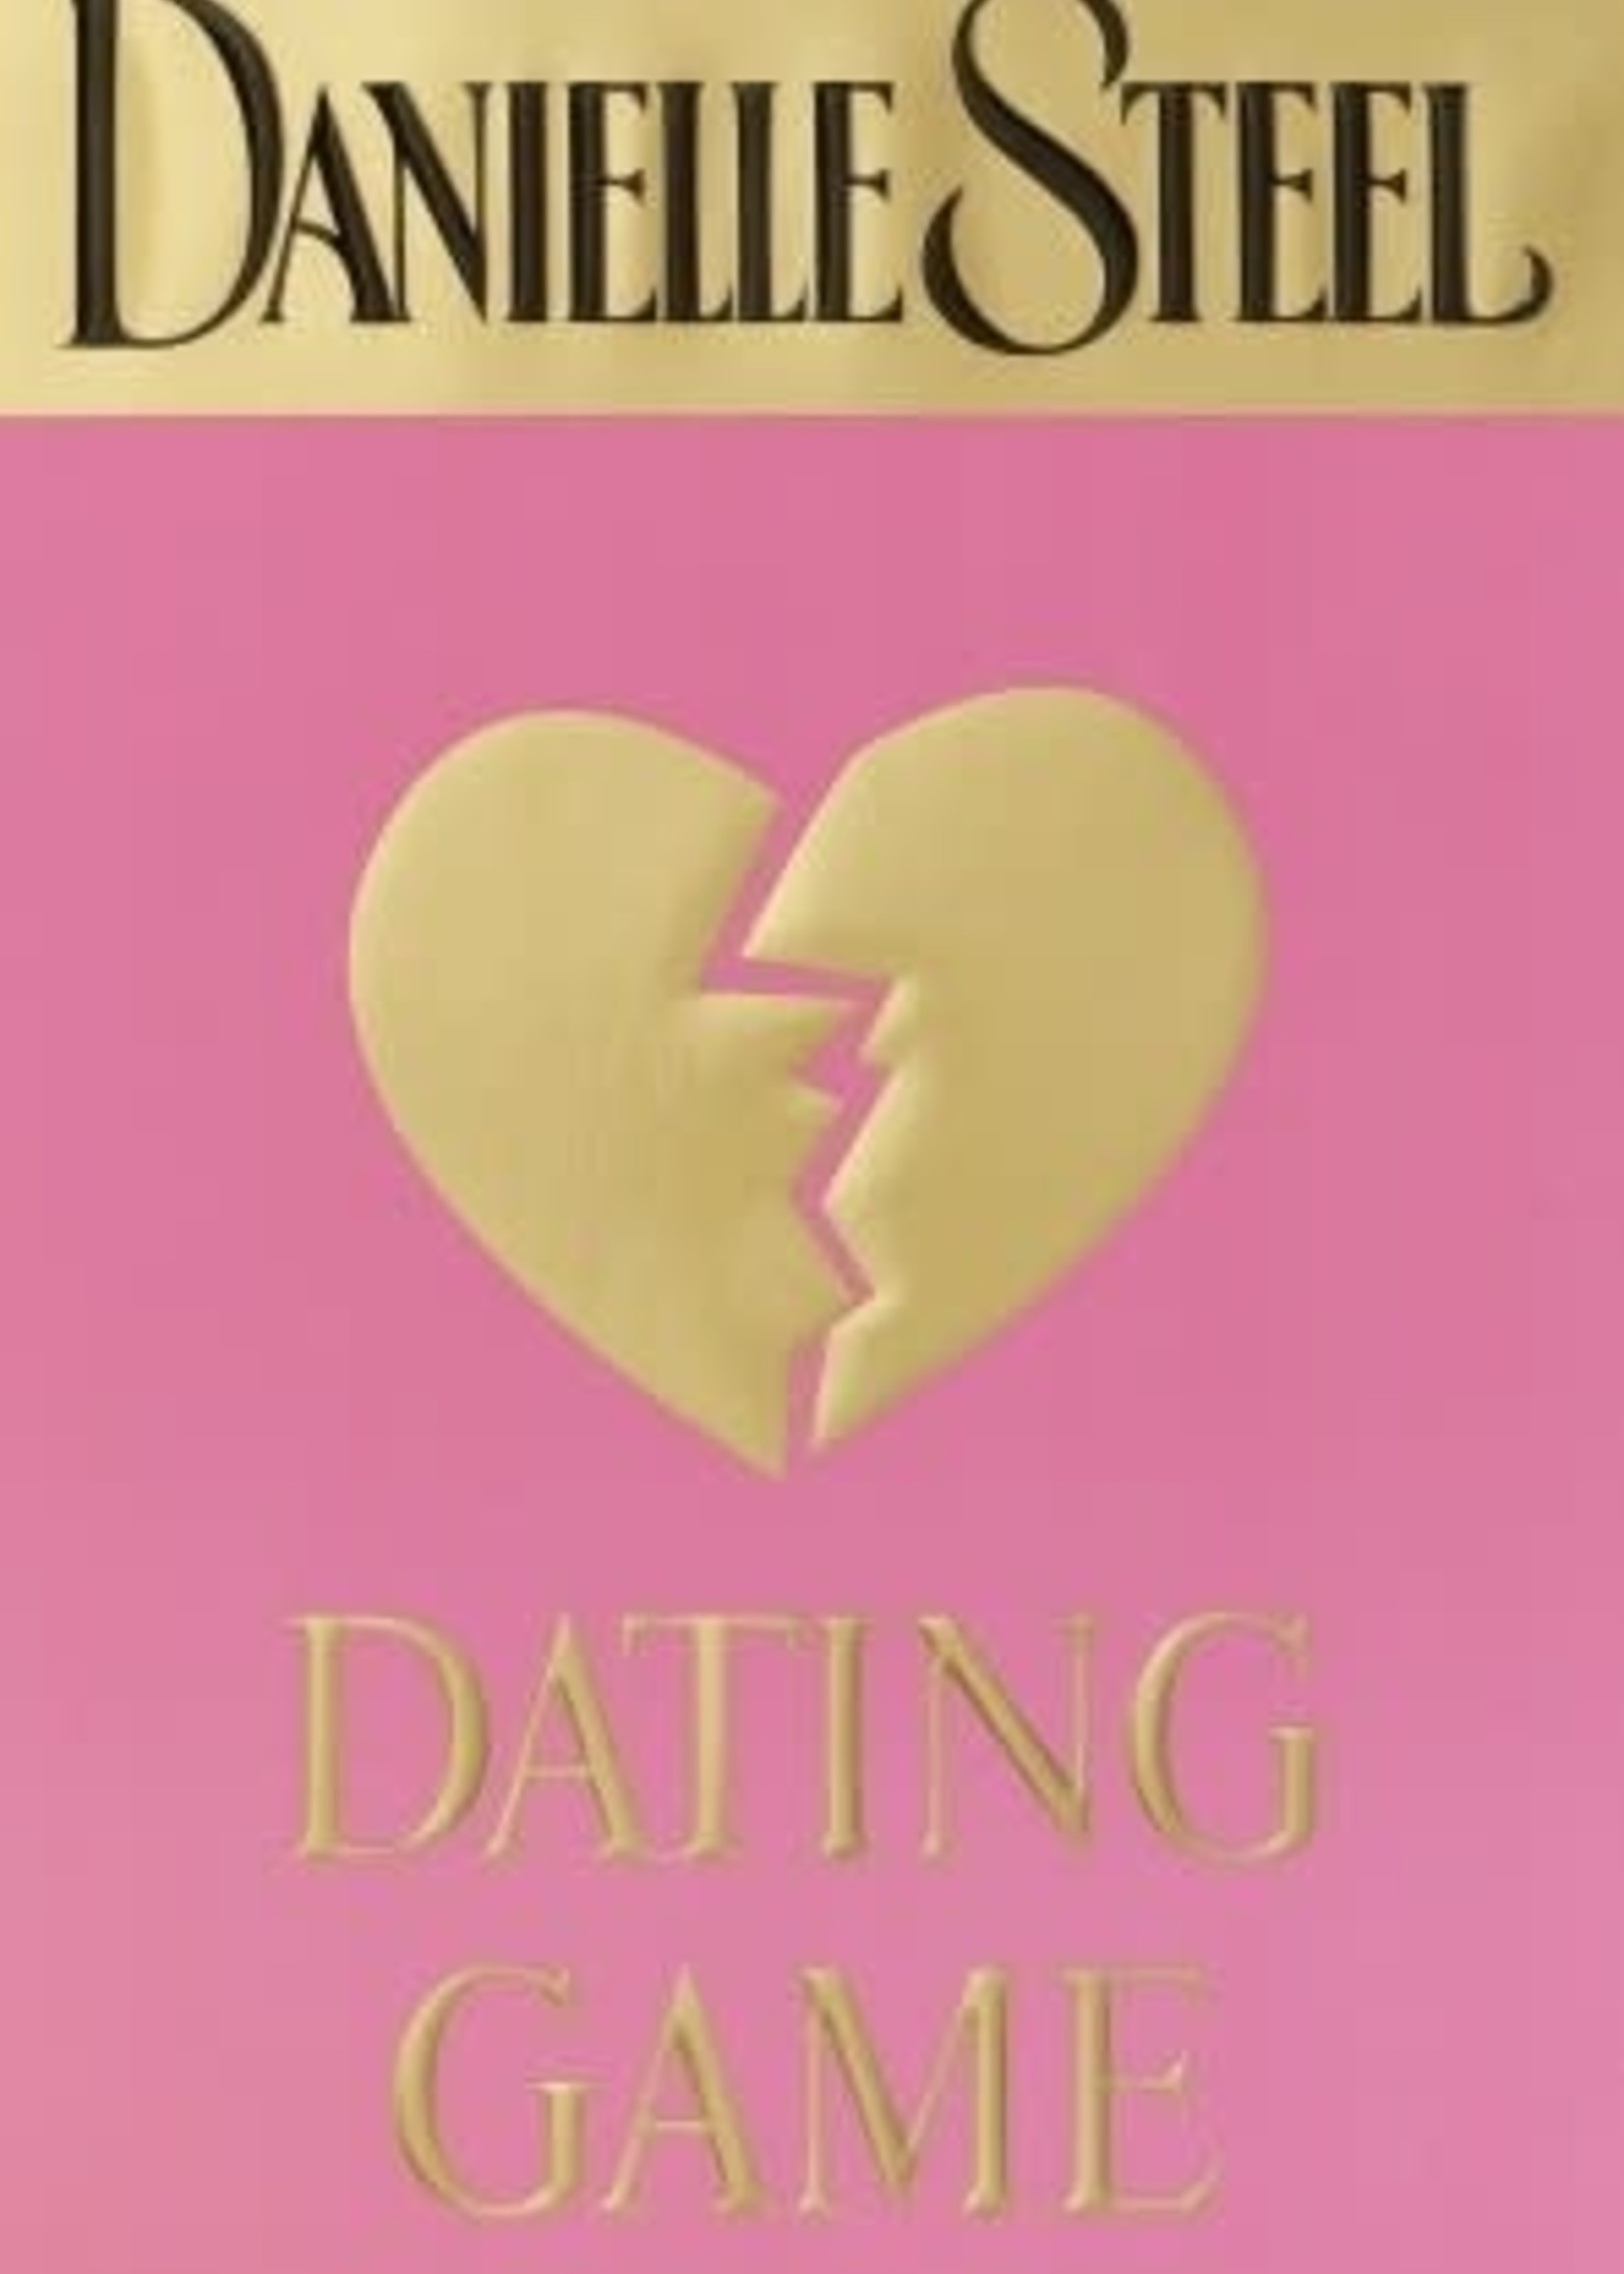 USED - Dating Game by Danielle Steel